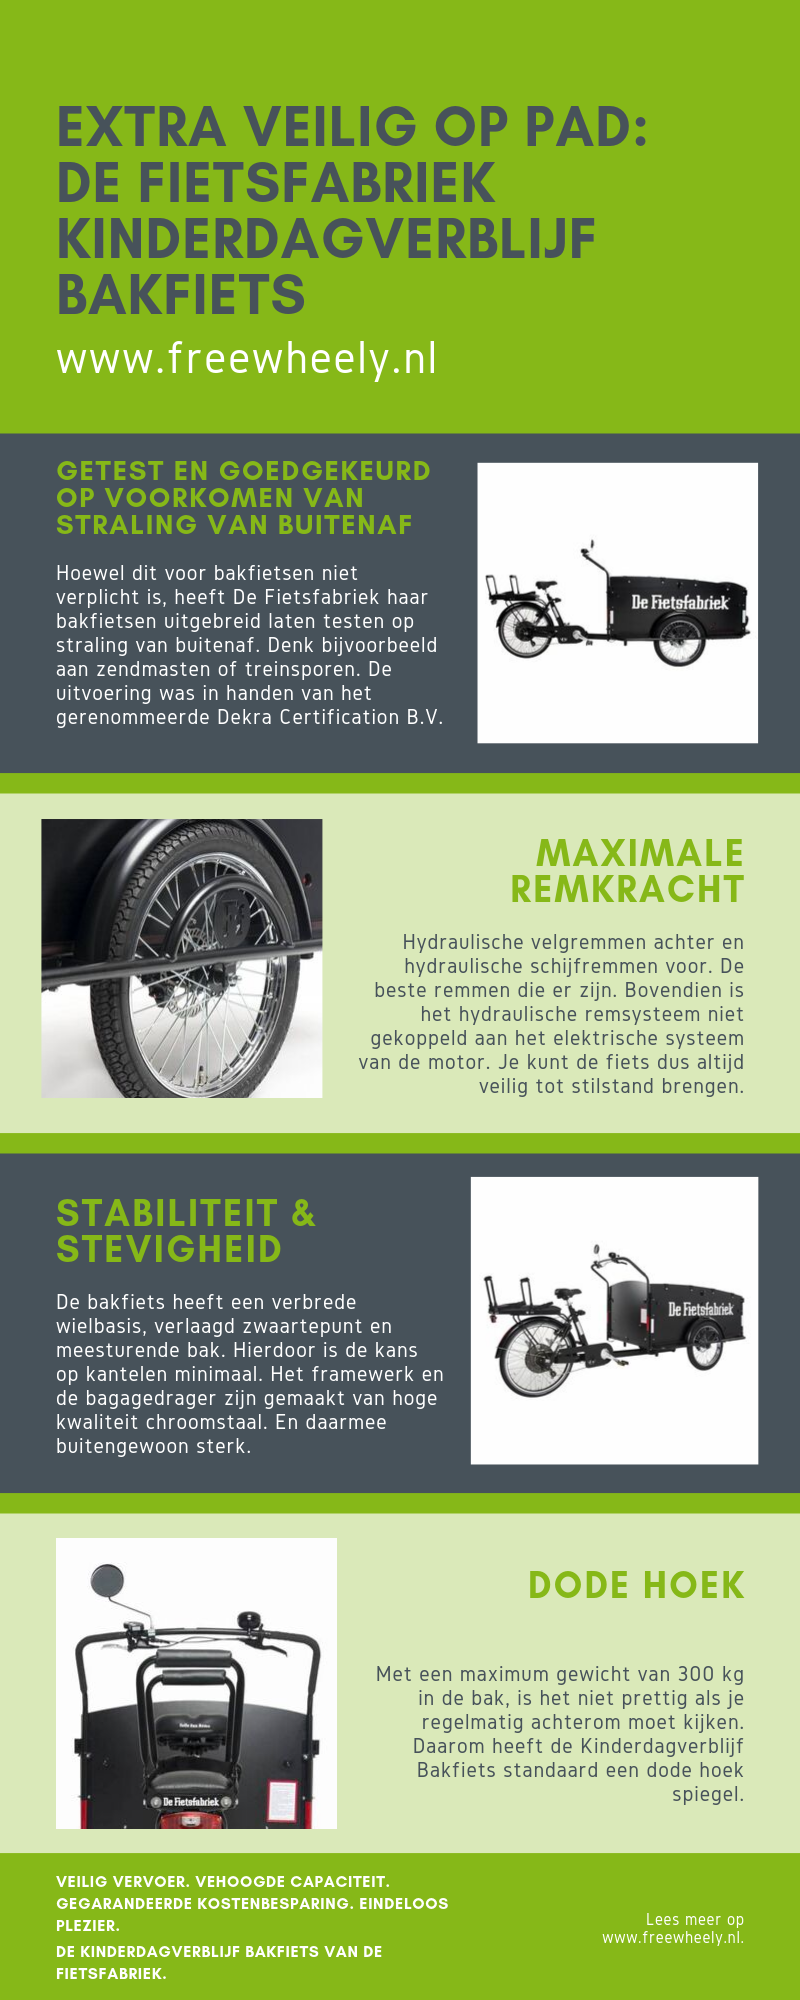 Infographic Free Wheely | Kinderdagverblijf Bakfiets Extra Veilig